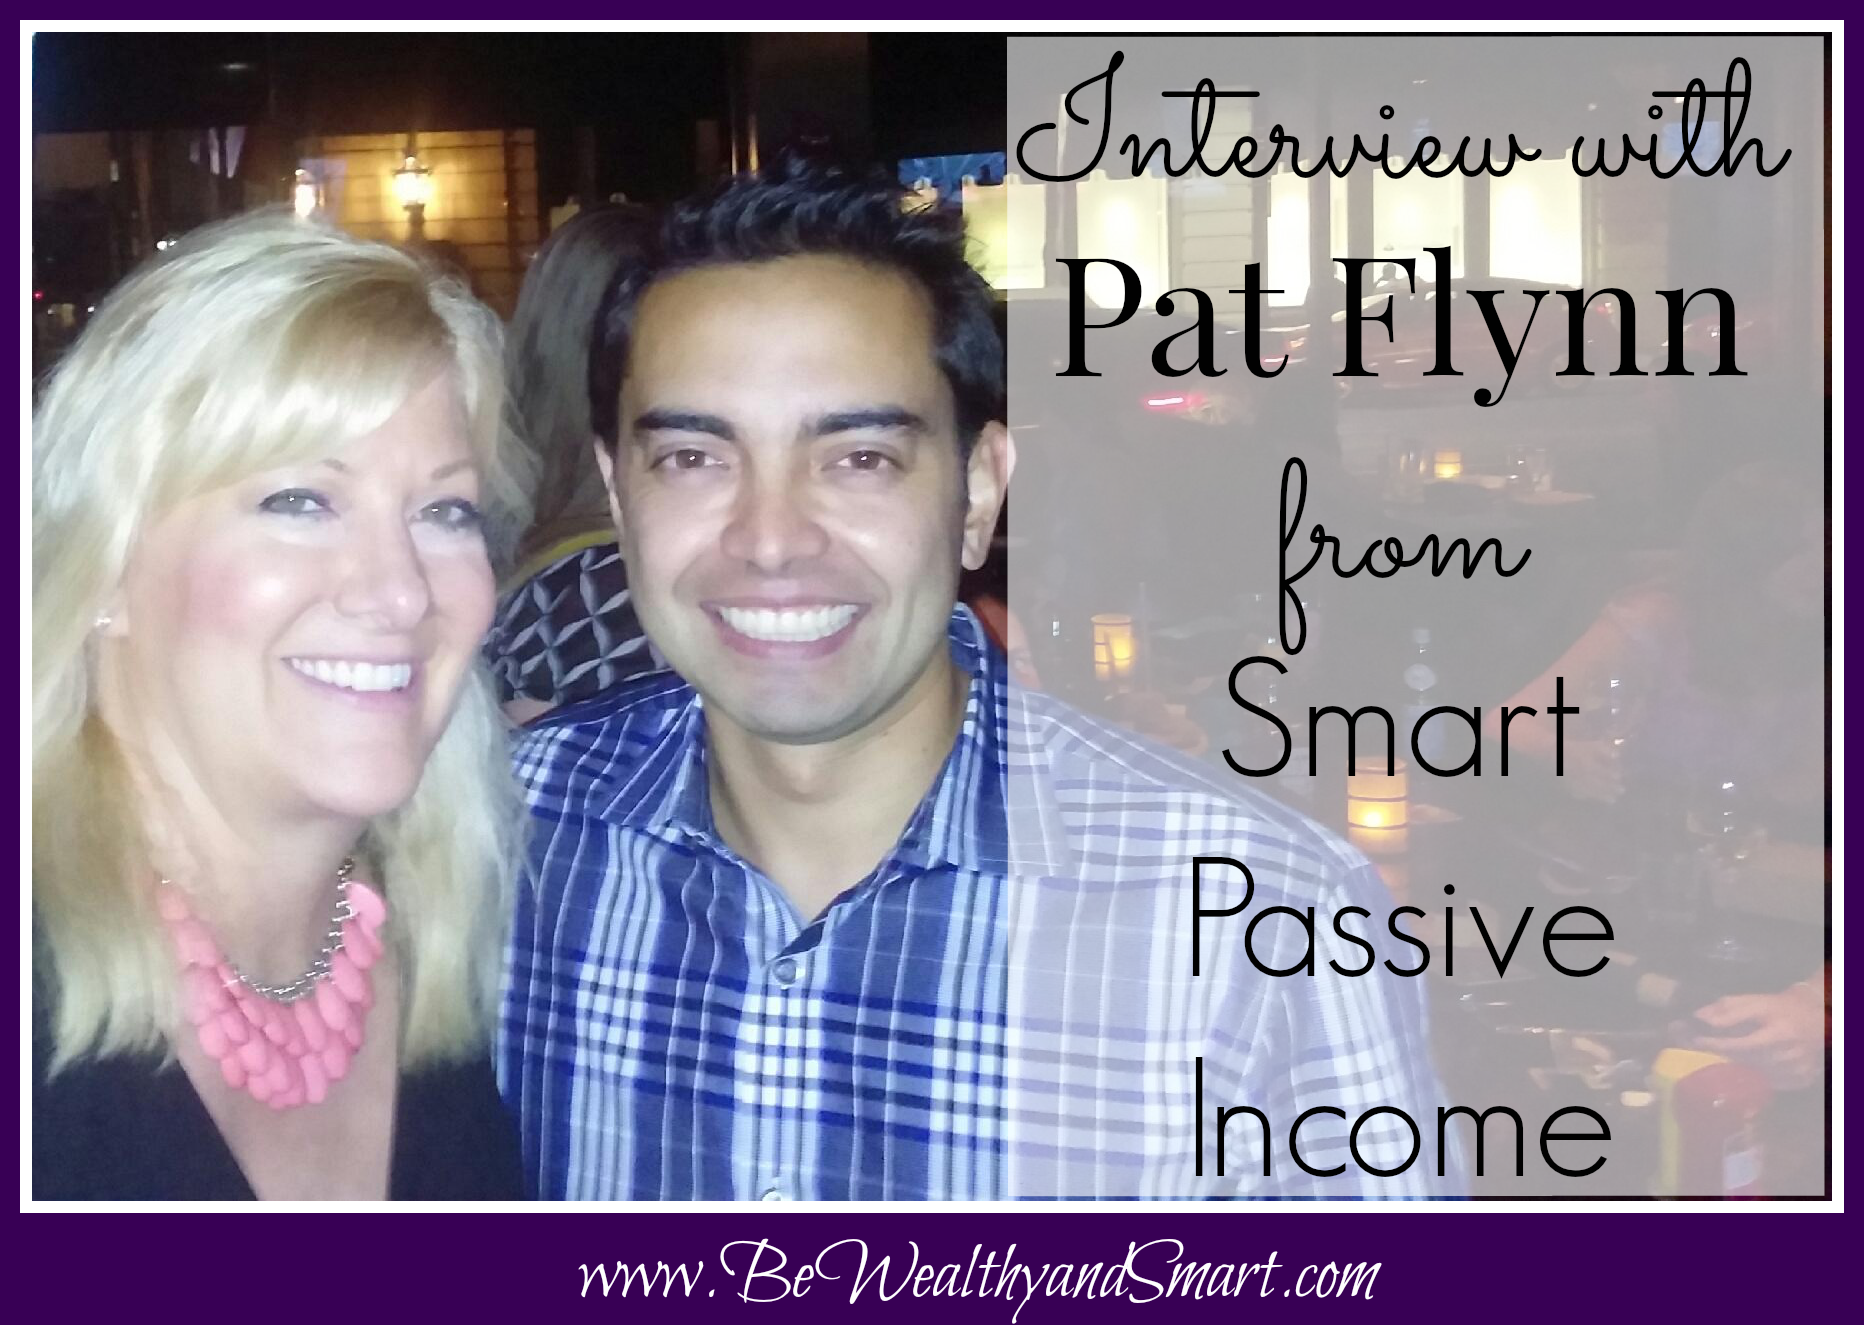 063: Interview with Pat Flynn from Smart Passive Income